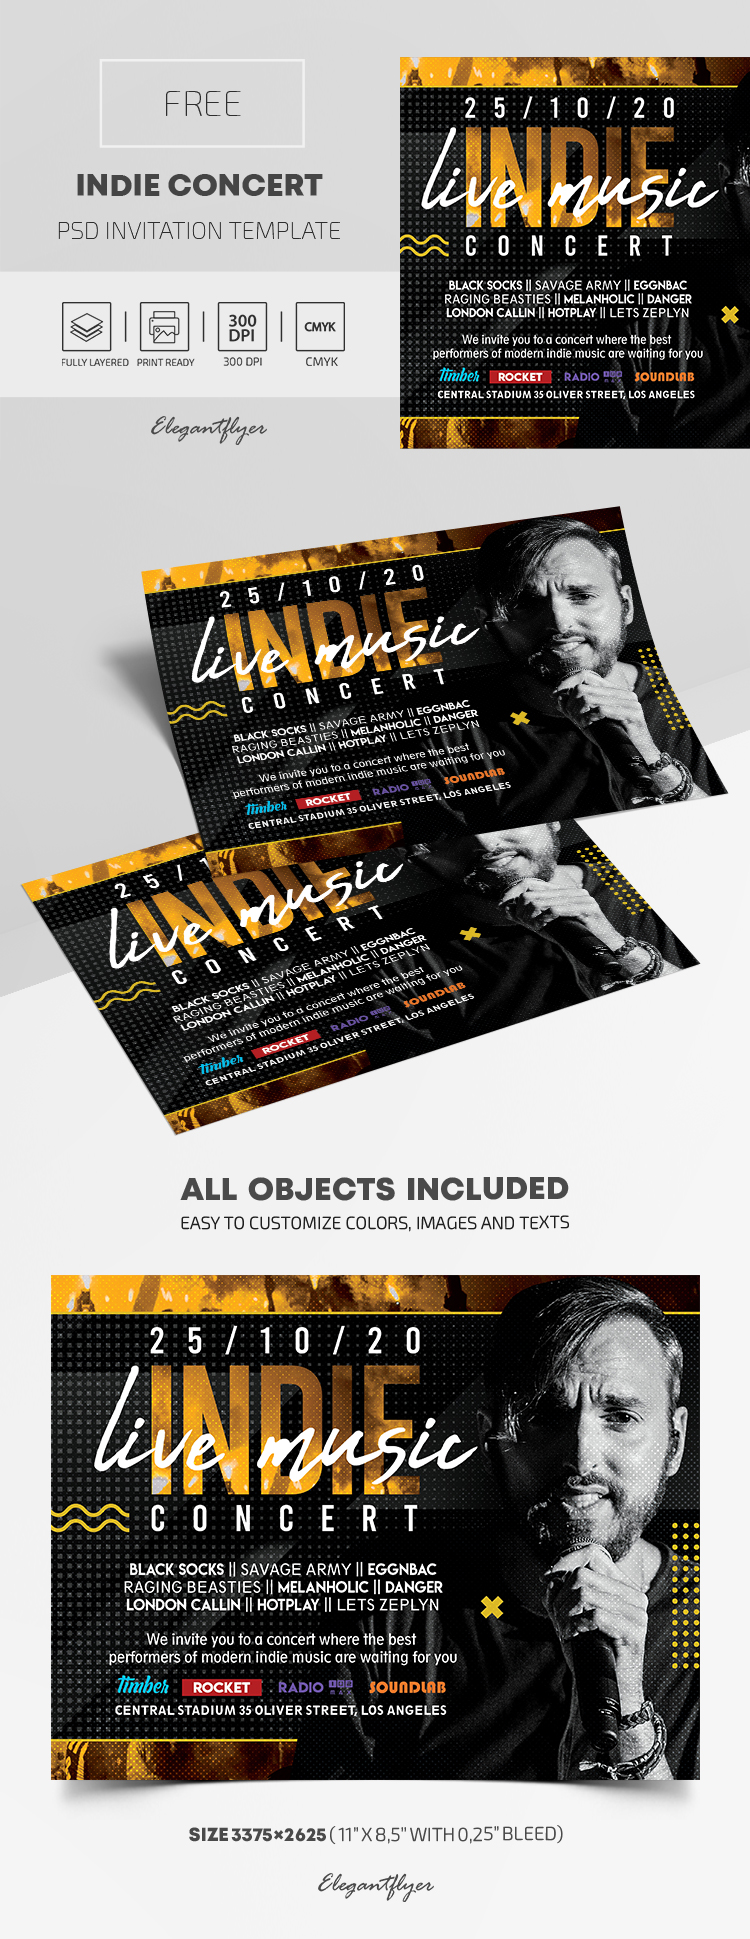 Free Indie Concert Invitation PSD Template